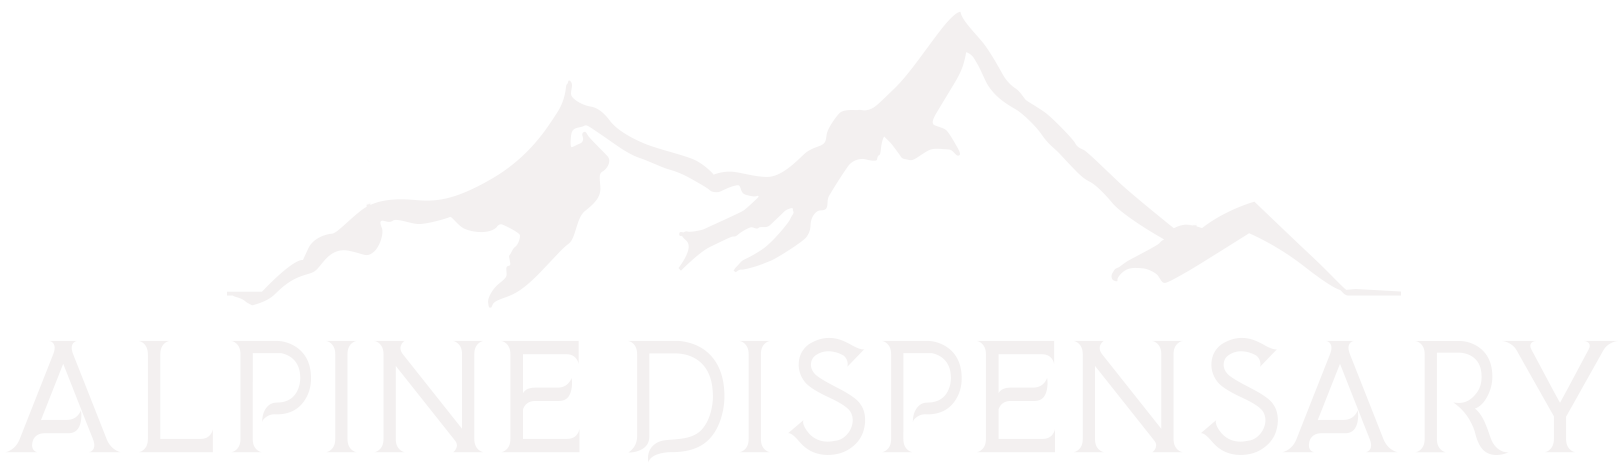 Alpine Dispensary | Quality CBD and Hemp Products in Helen